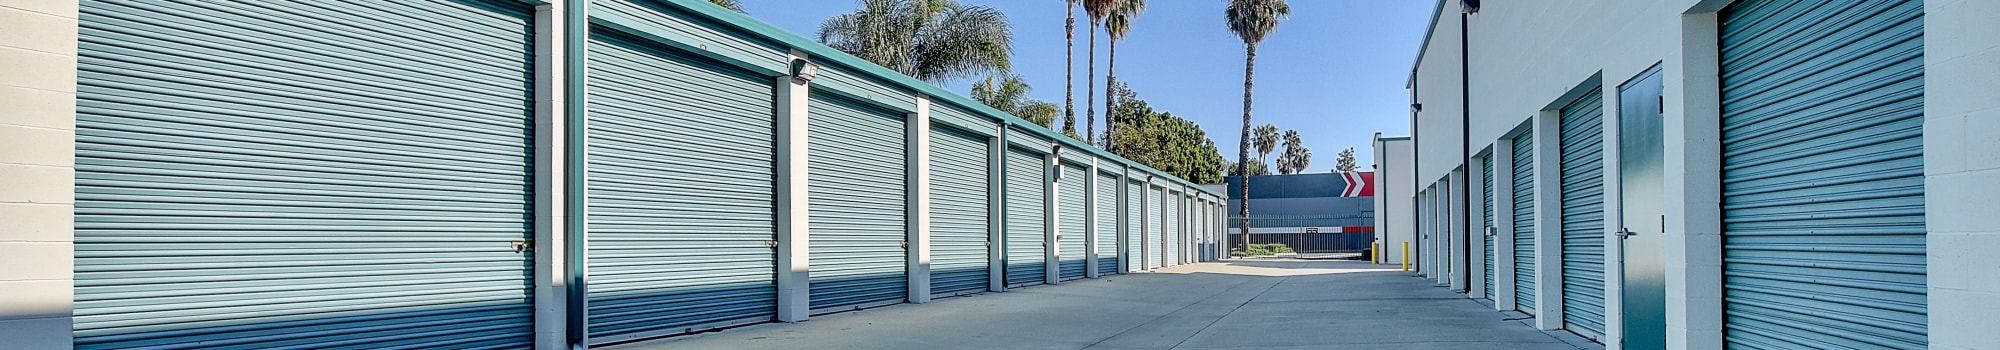 Reviews for My Self Storage Space in West Covina, California